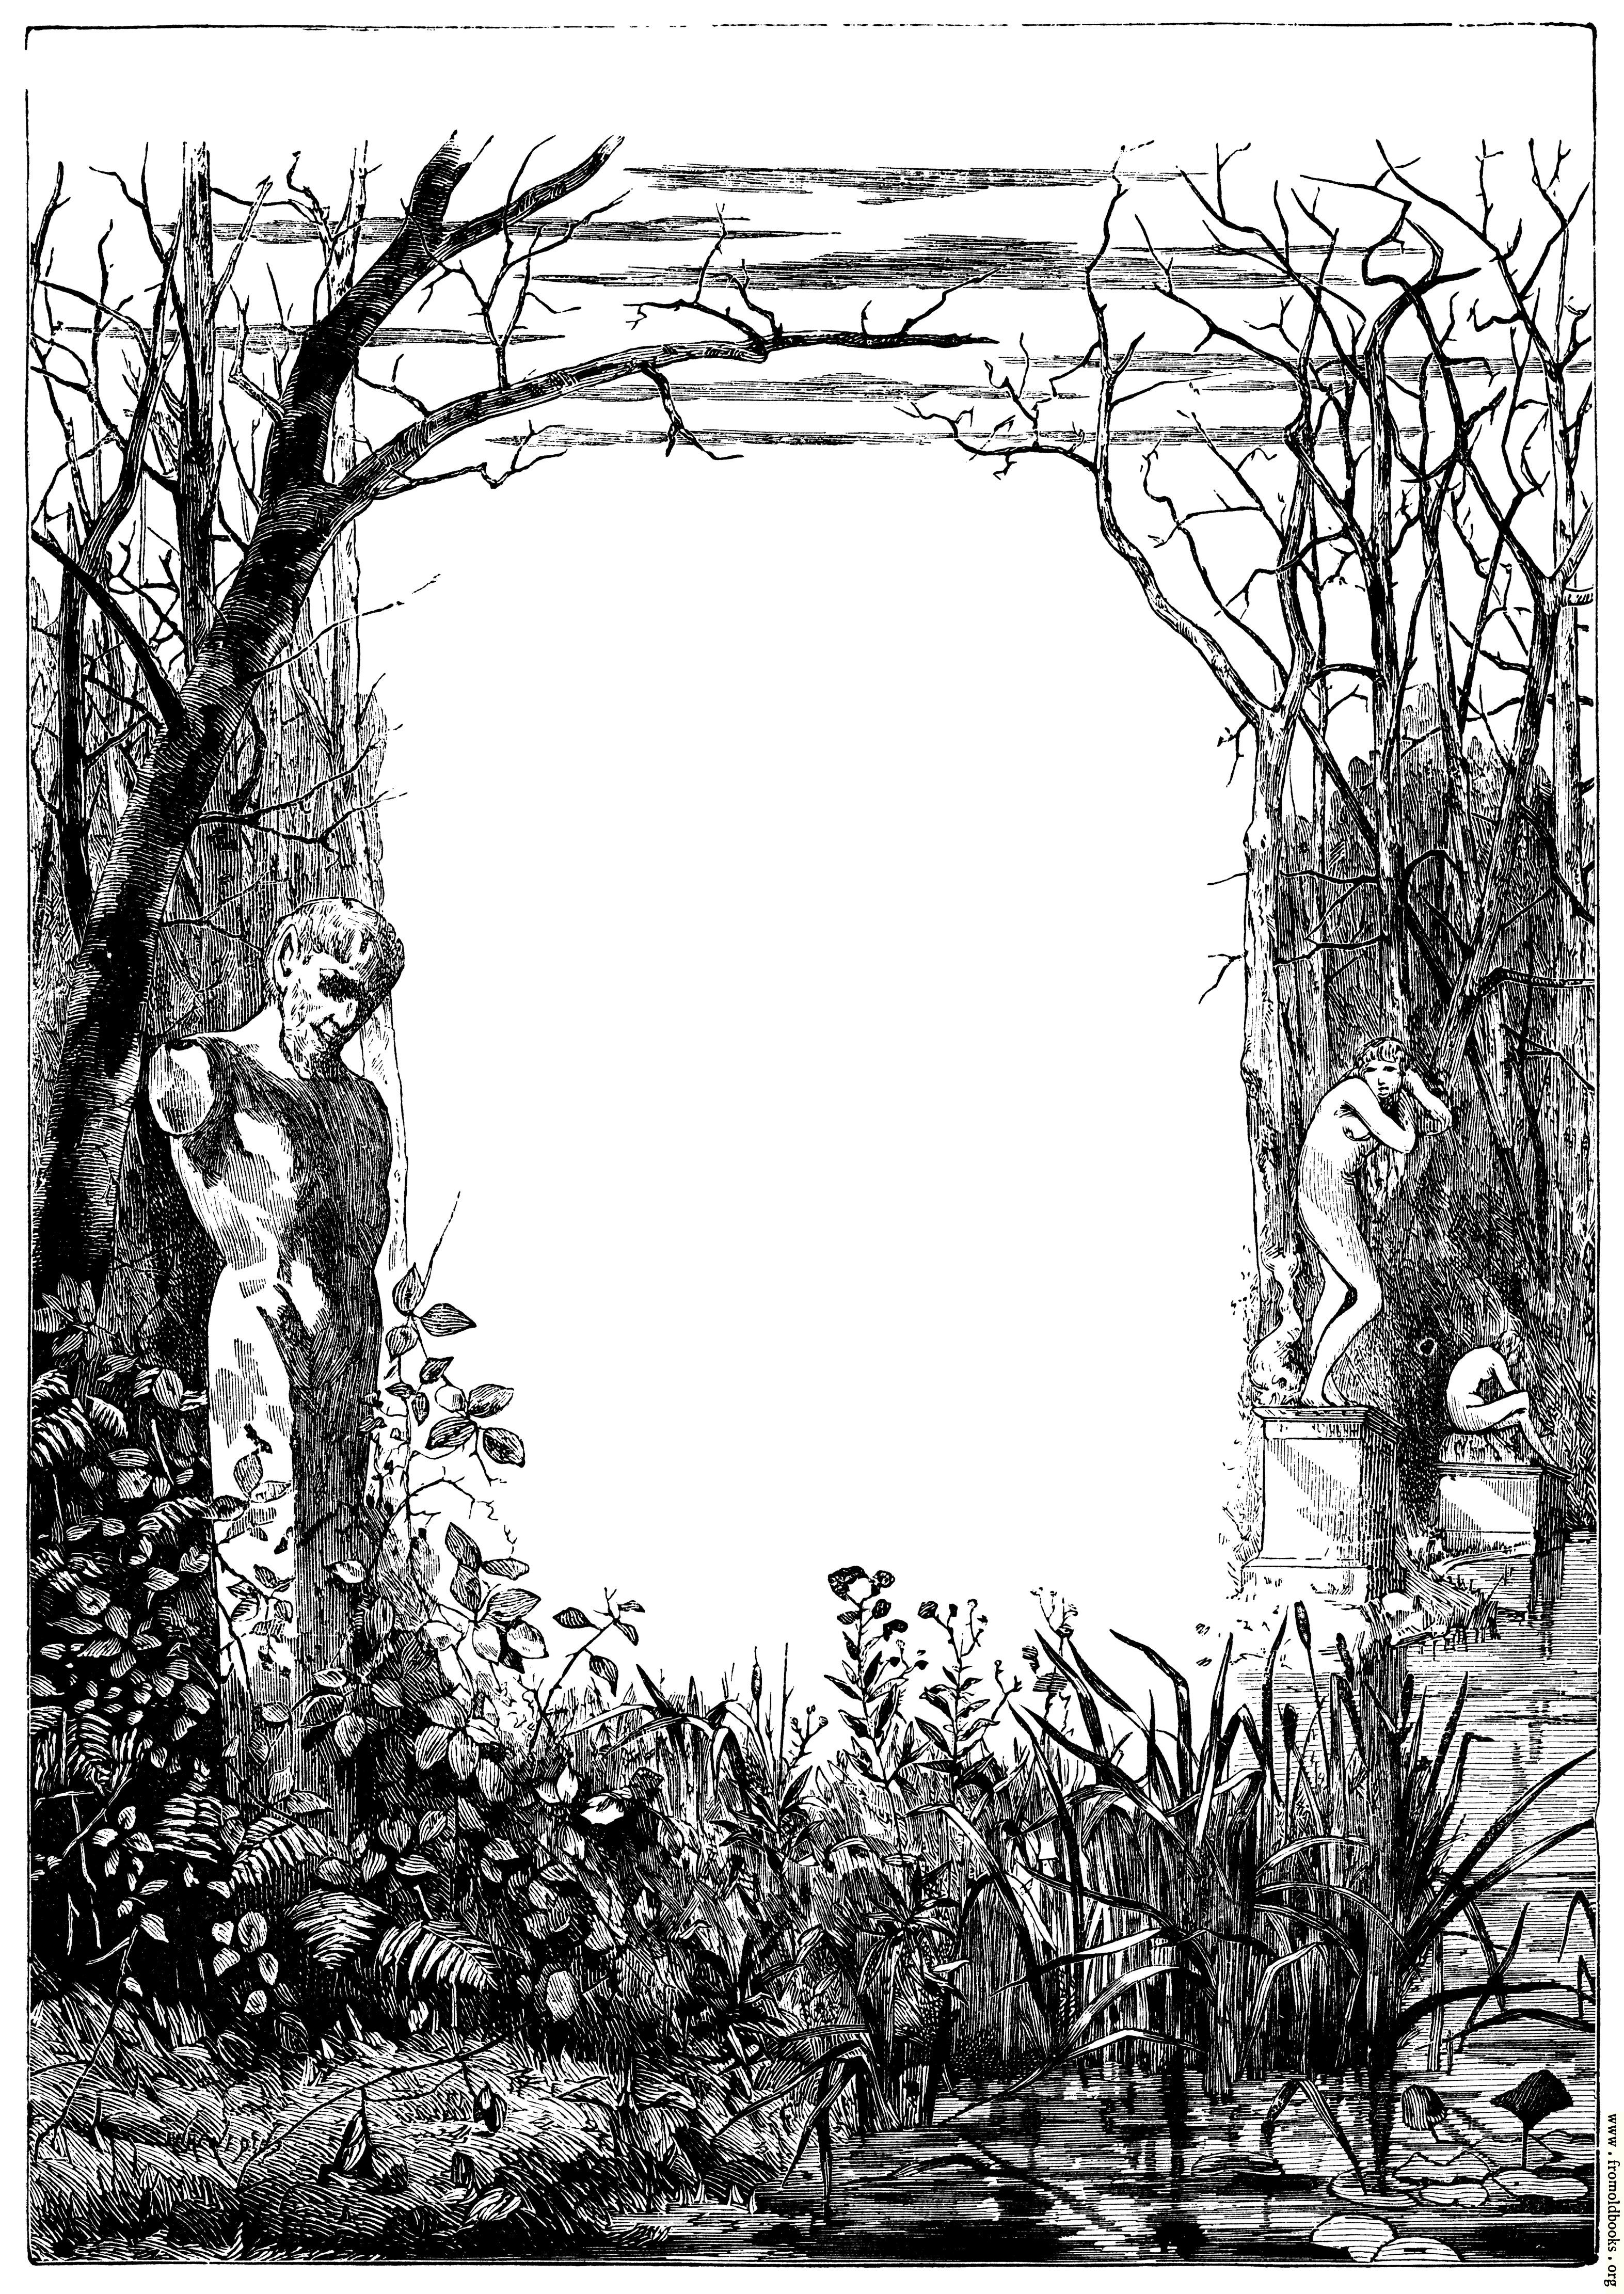 Mournful Contemplative Full Page Border With Statues